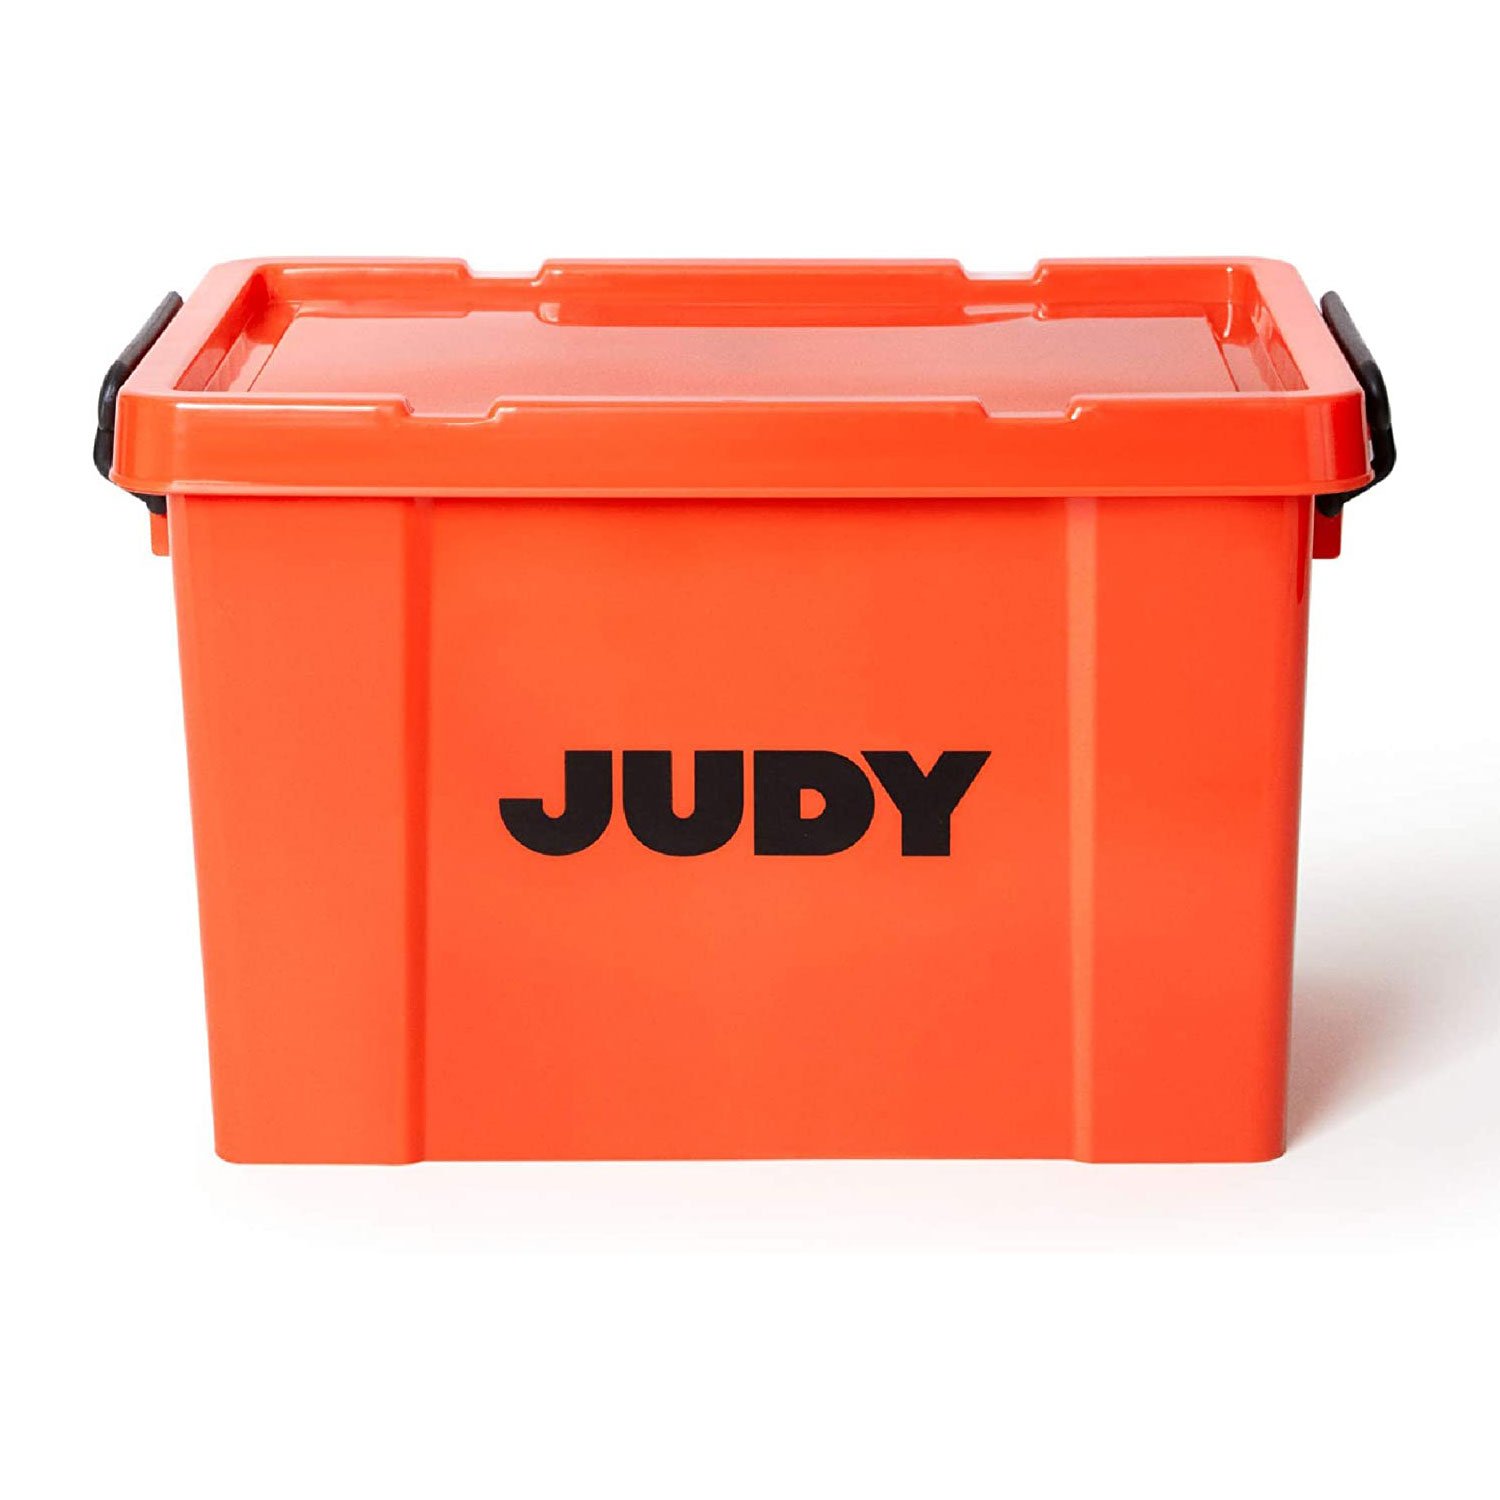 judy emergency preparedness kit bin